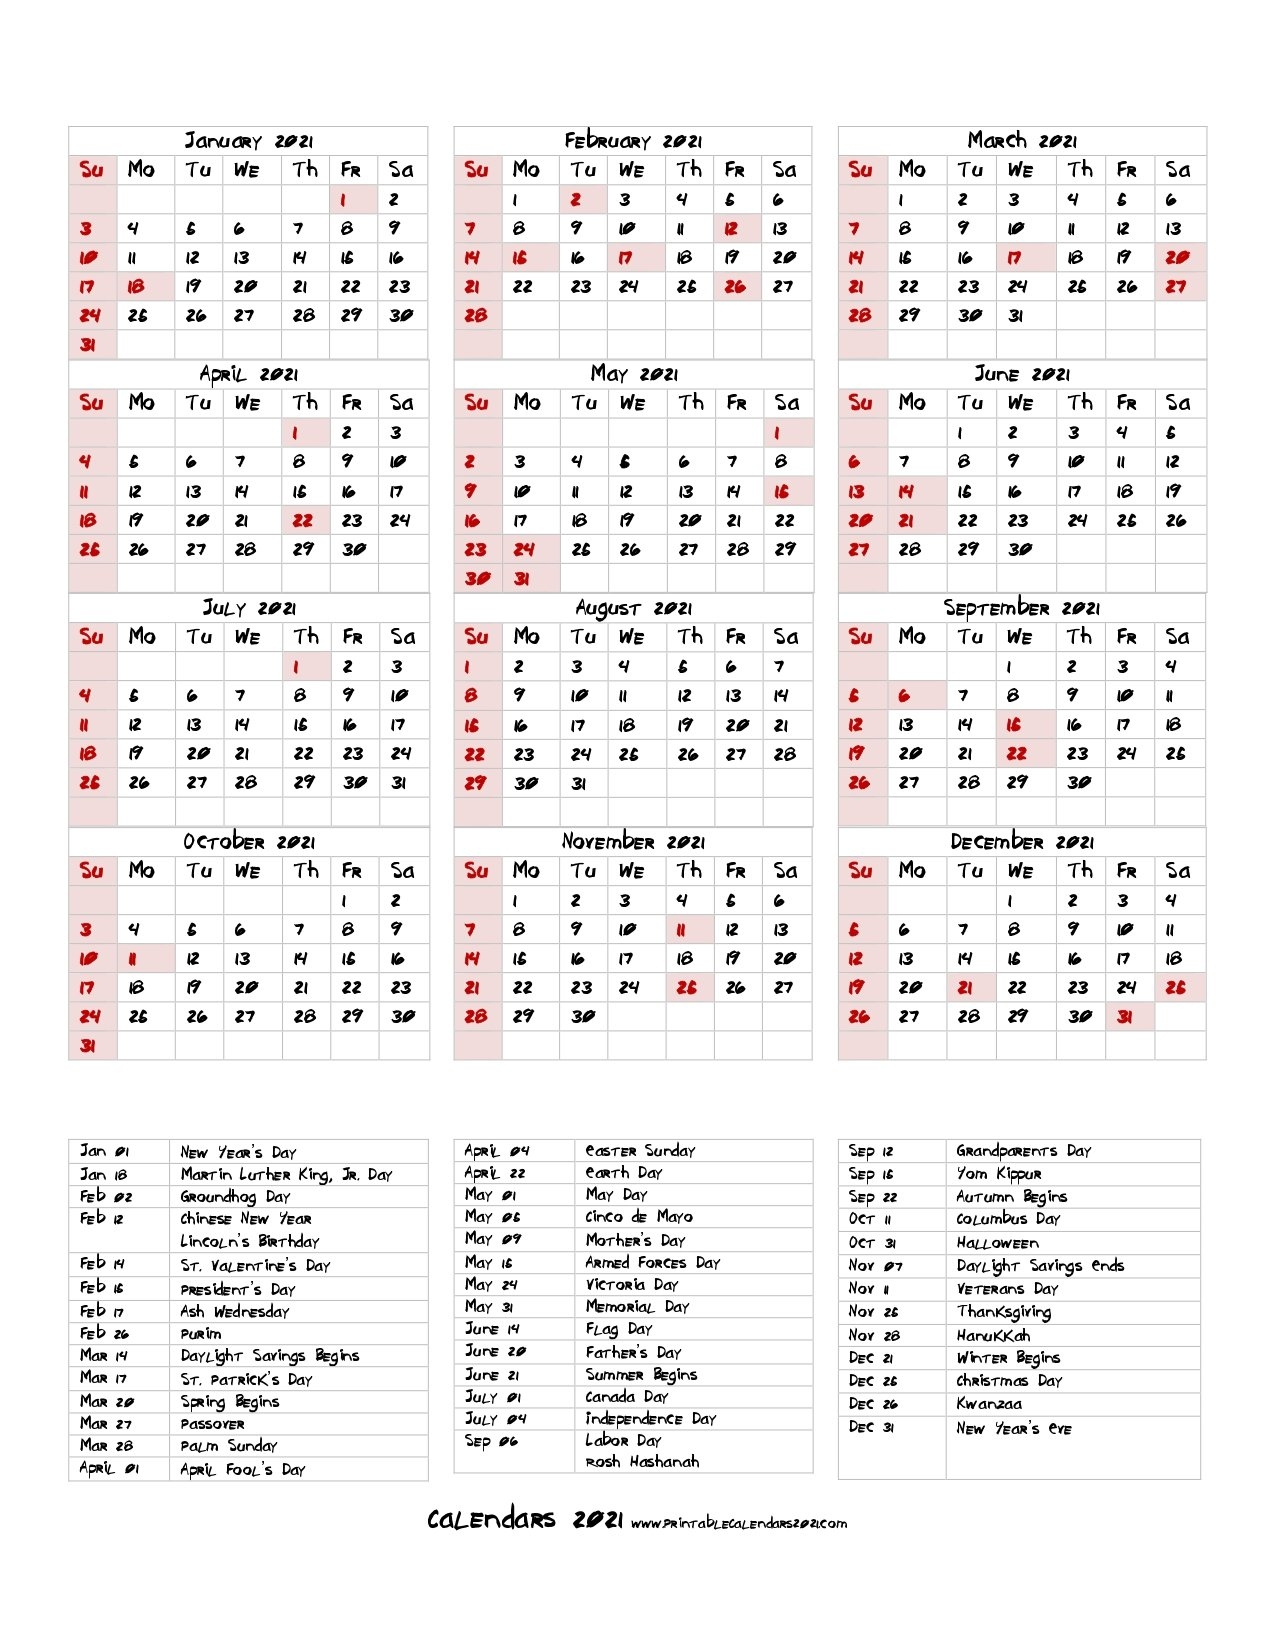 68+ Printable 2021 Yearly Calendar With Holidays, Portrait in 2021 Calendar Printable Pdf Free Pay Date And Holiday Graphics